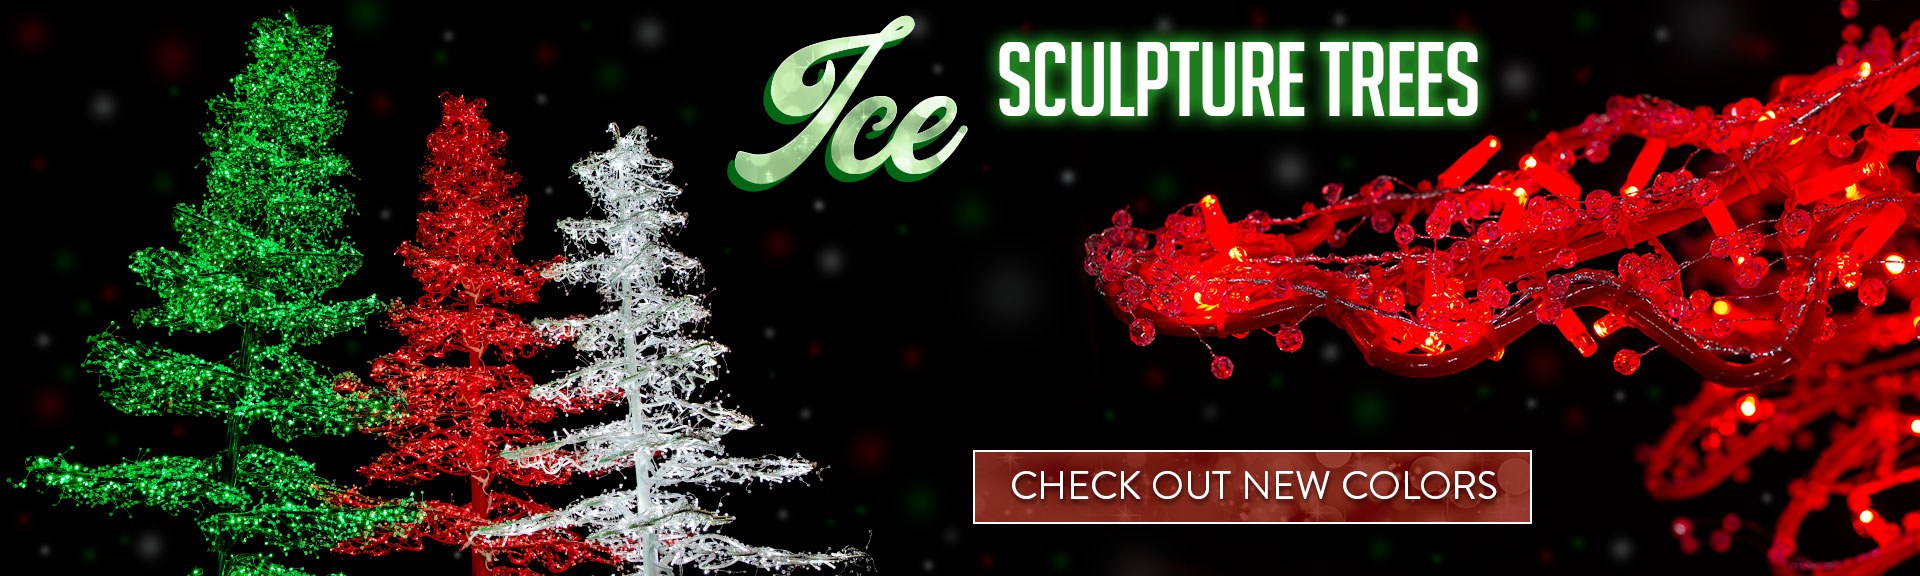 Ice Sculpture Trees in New Colors! Check them out!